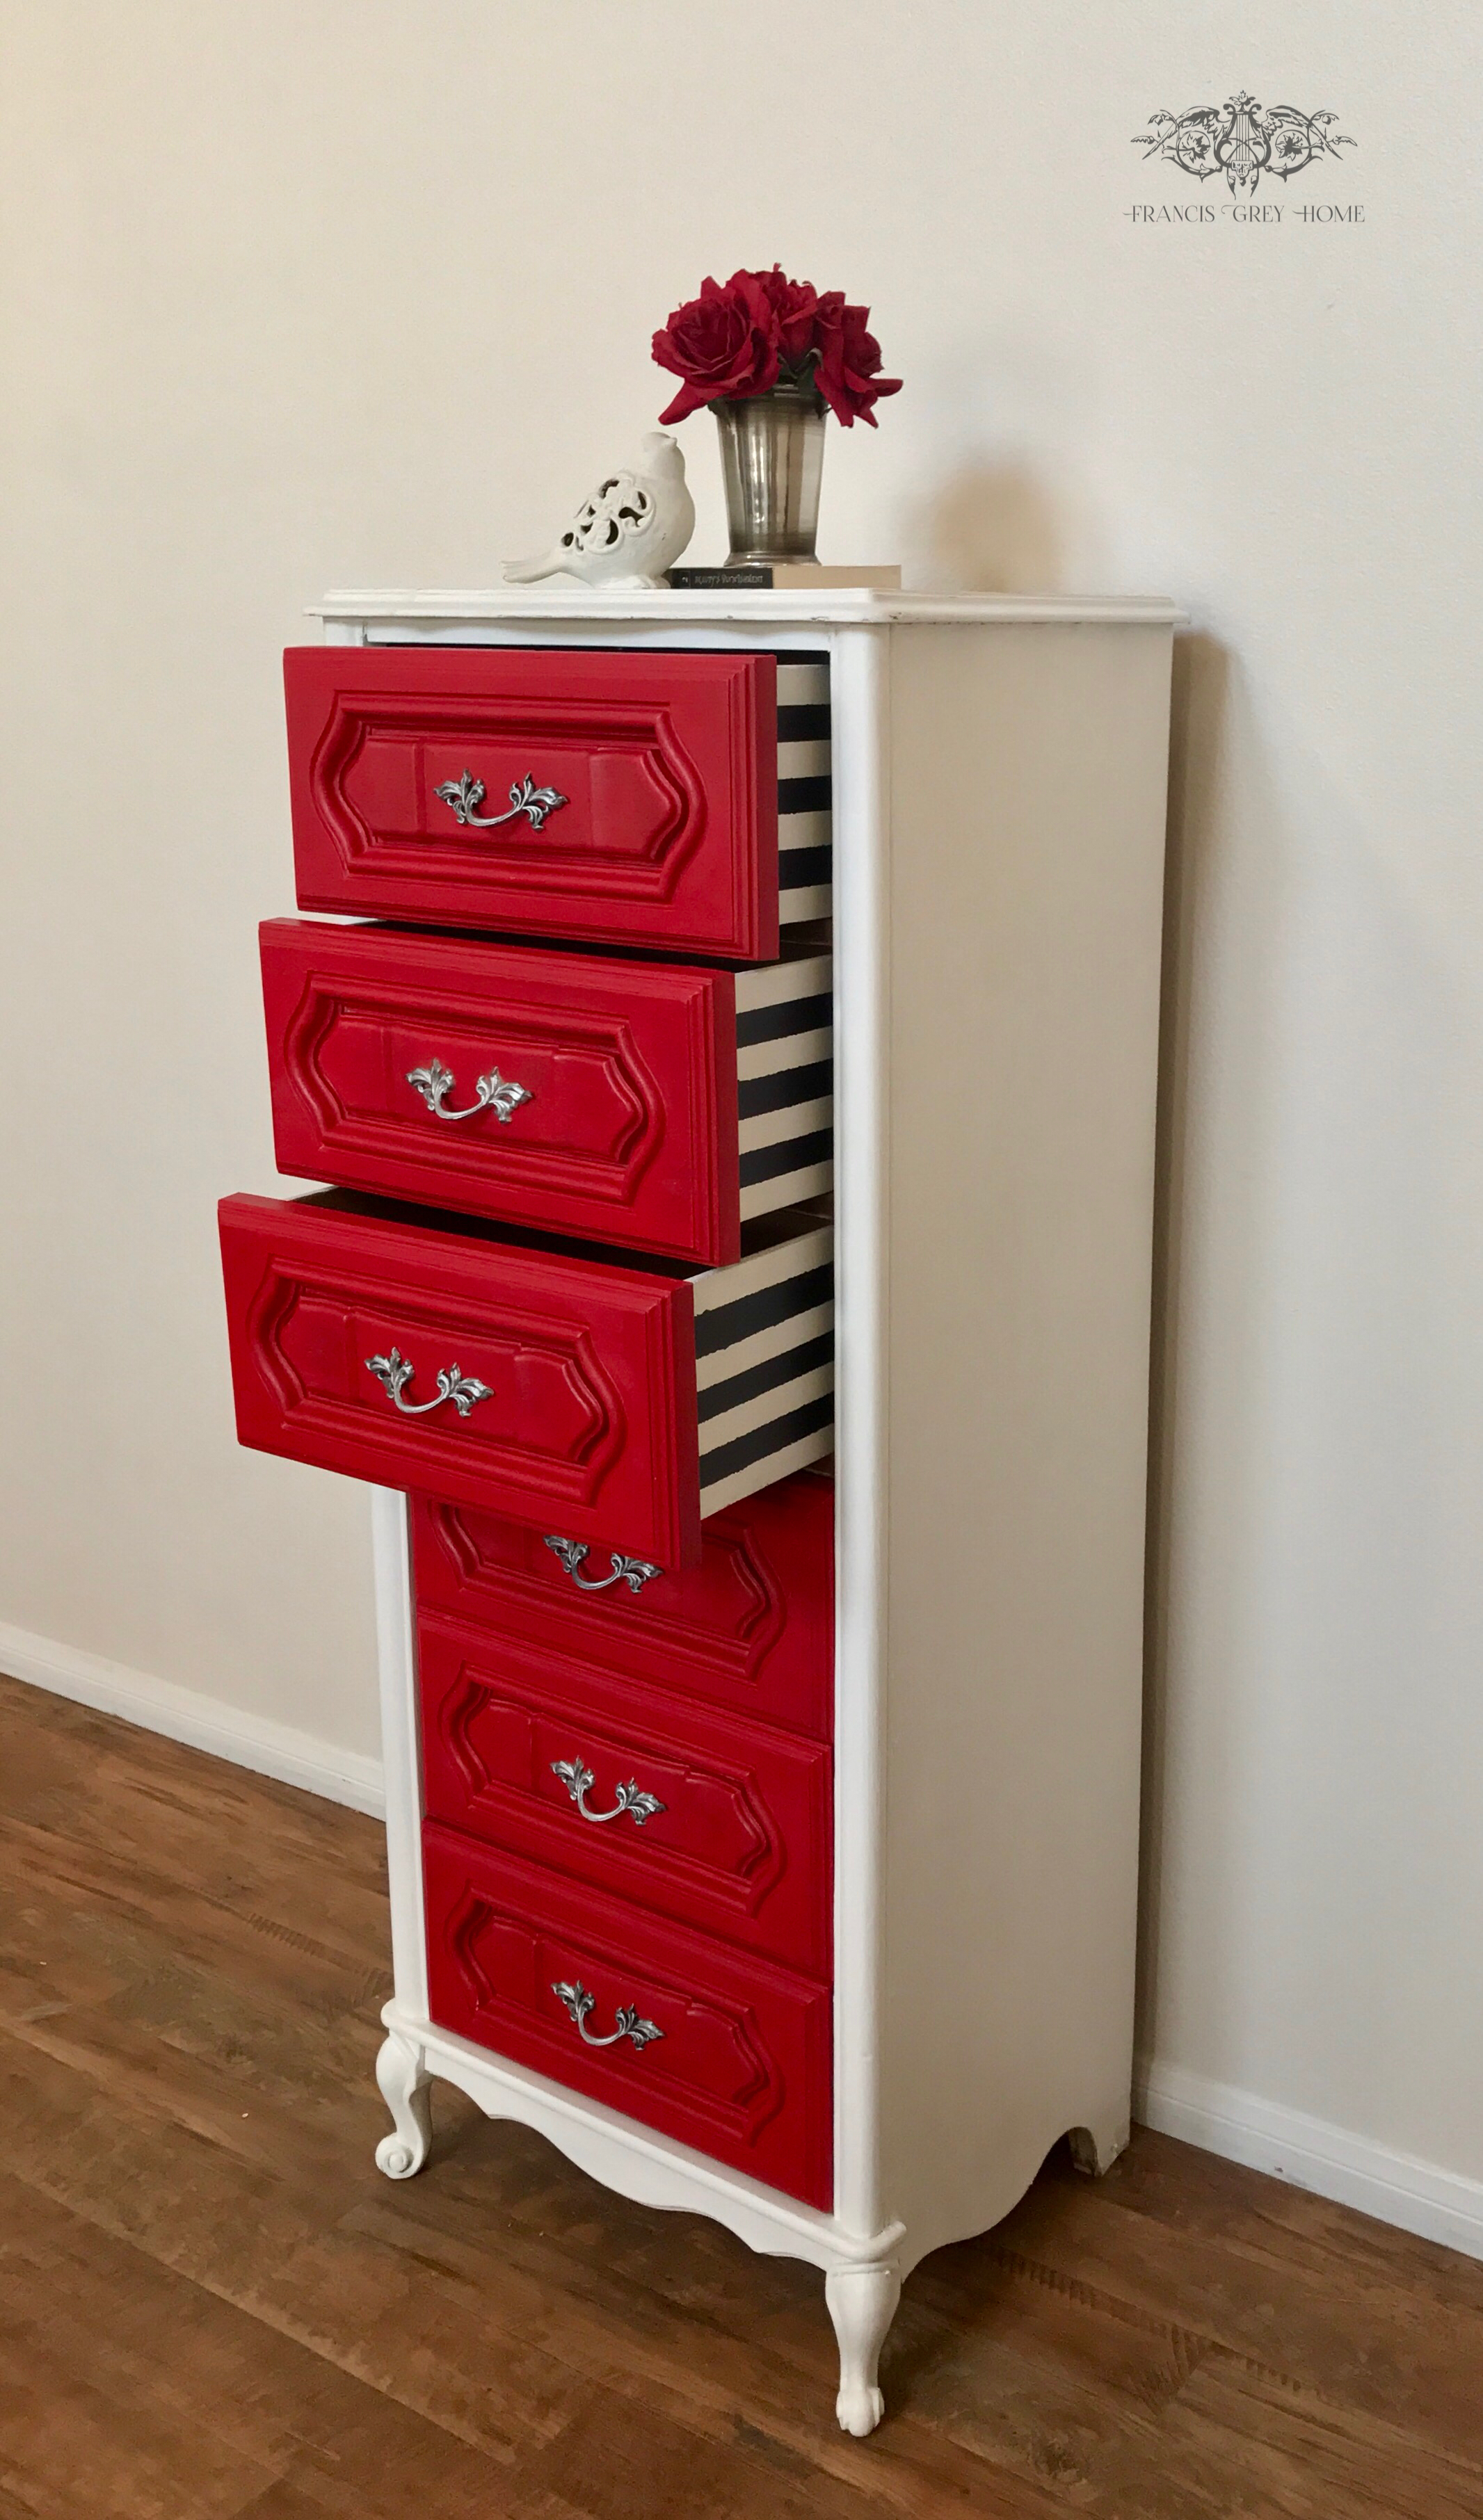 Chest French Provincial Chalk Paint Makeover Painted Furniture Stripes Red And White Black